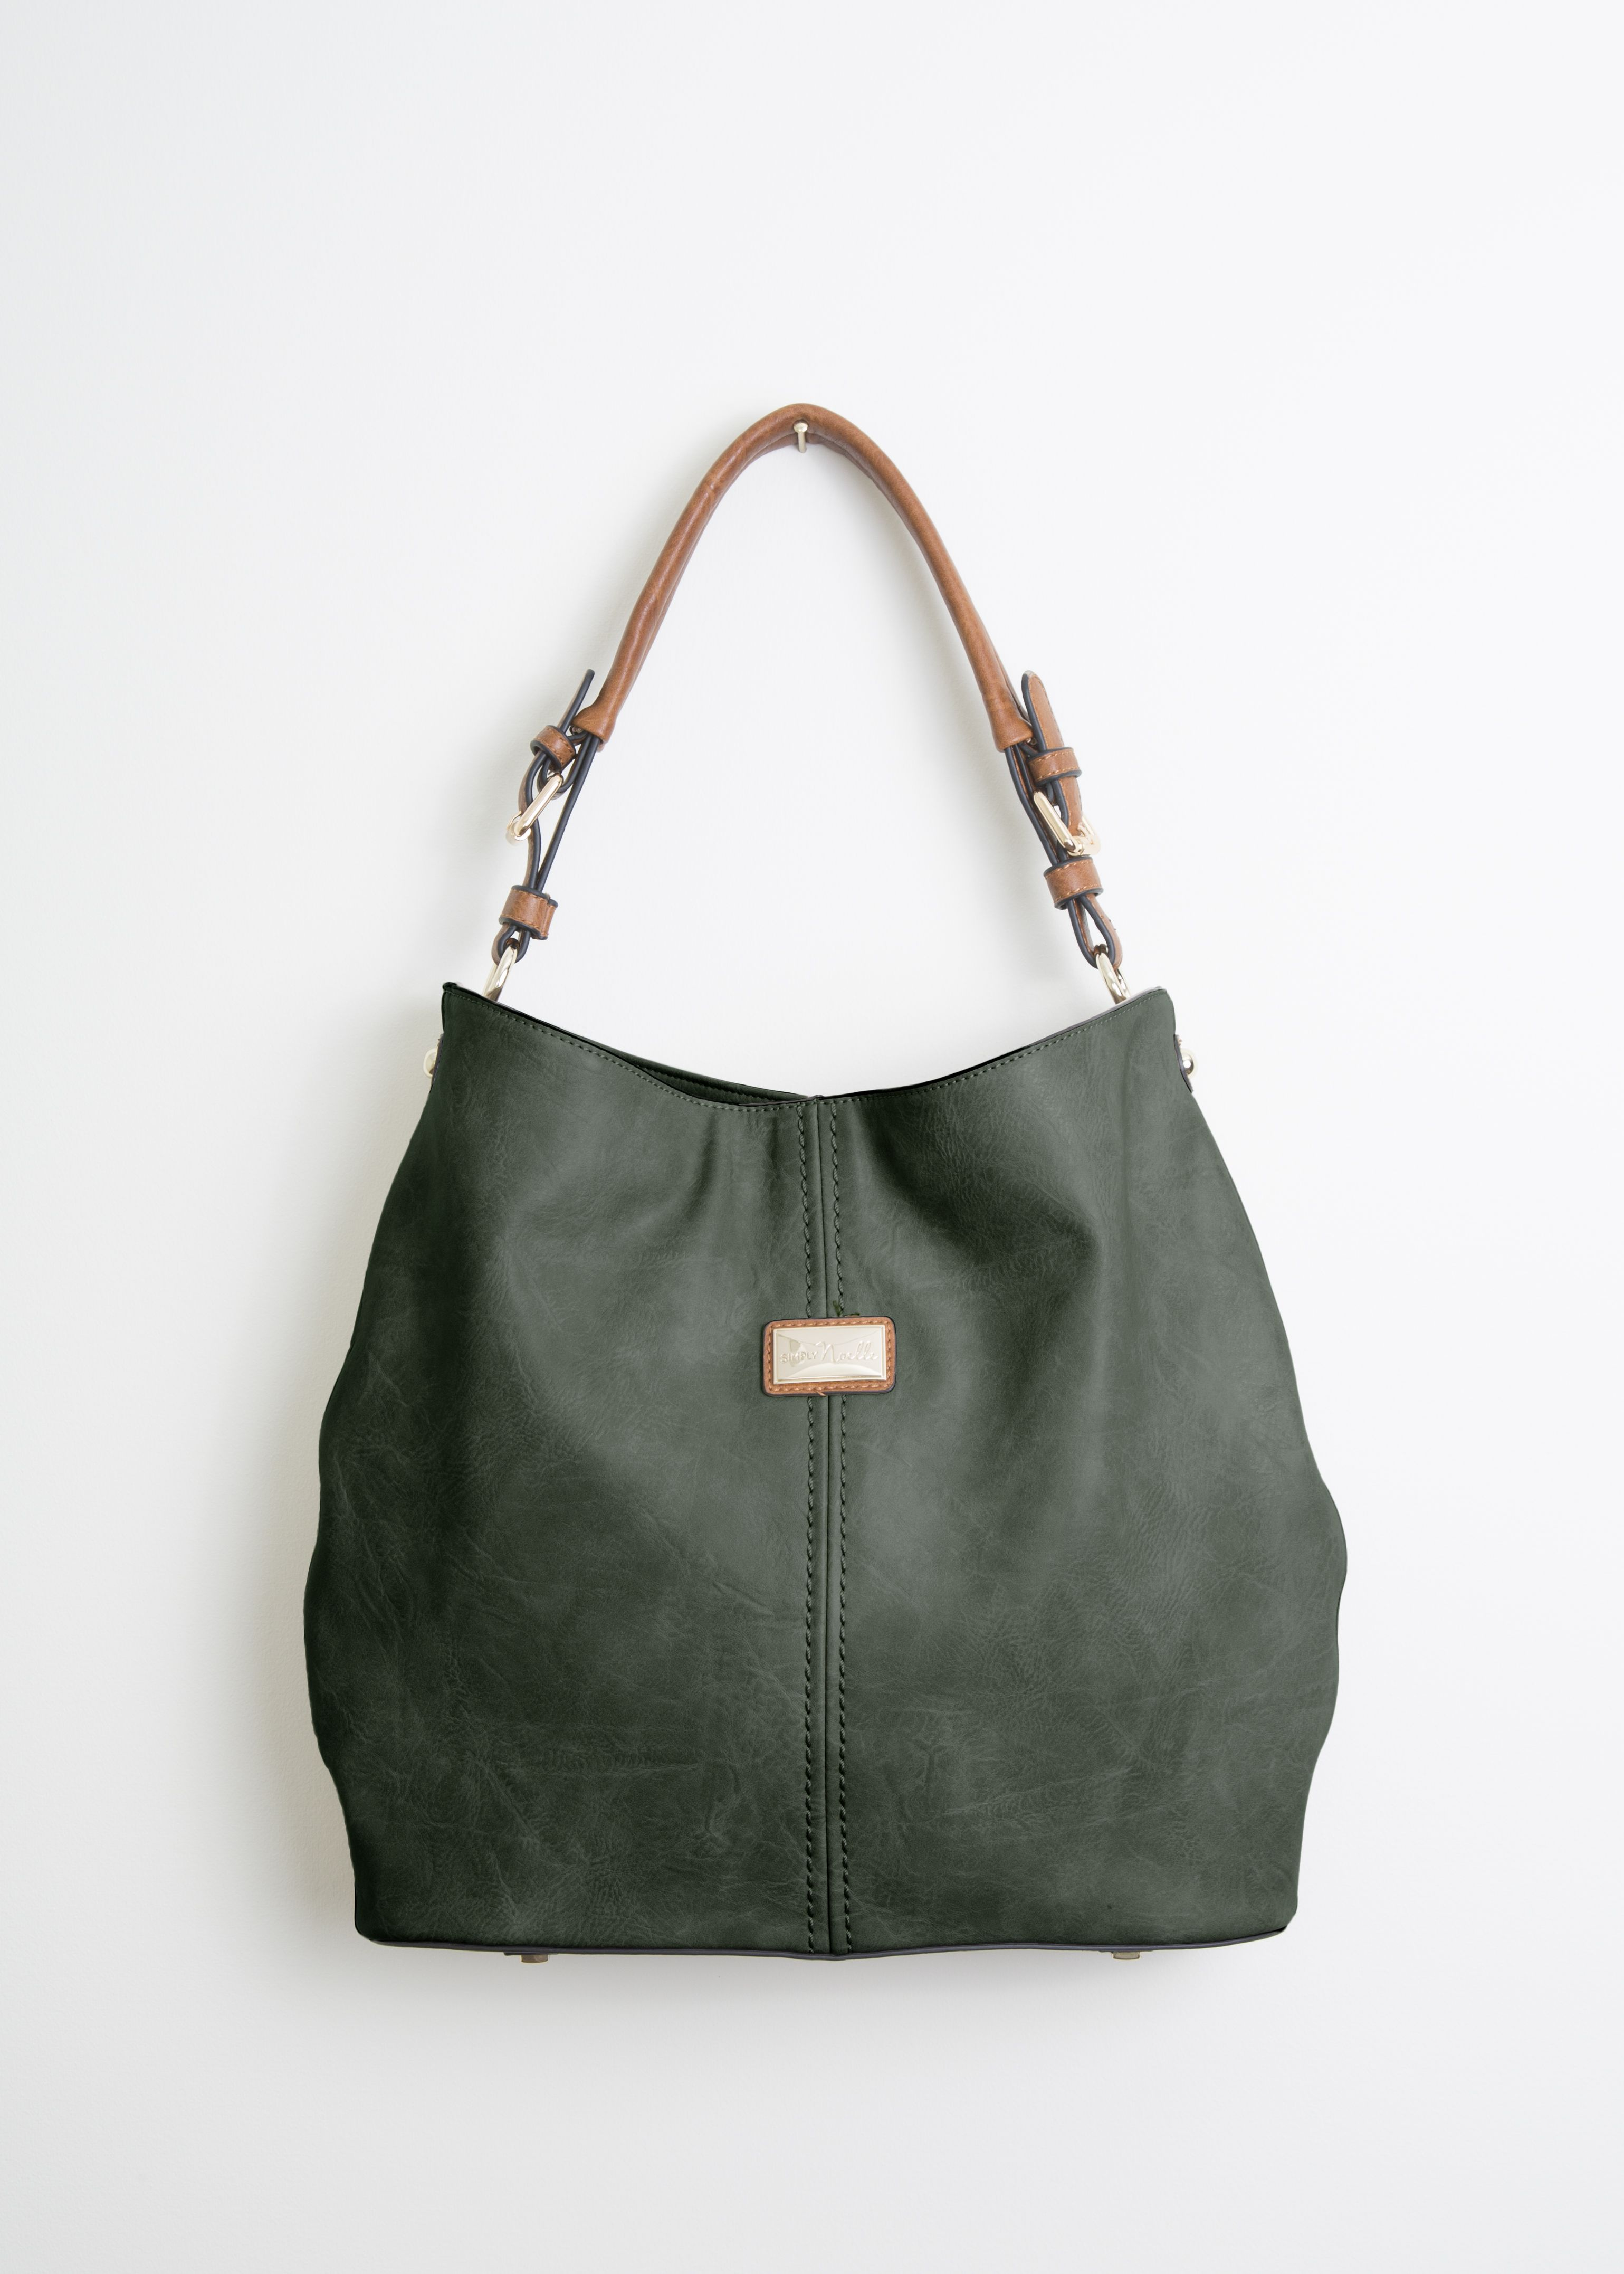 1ce1b6eea5af Essential -- The Simply Noelle Hobo Handbag in Fern - Find this beautiful  bag in several colors at Ashcombe Farm and Greenhouses!